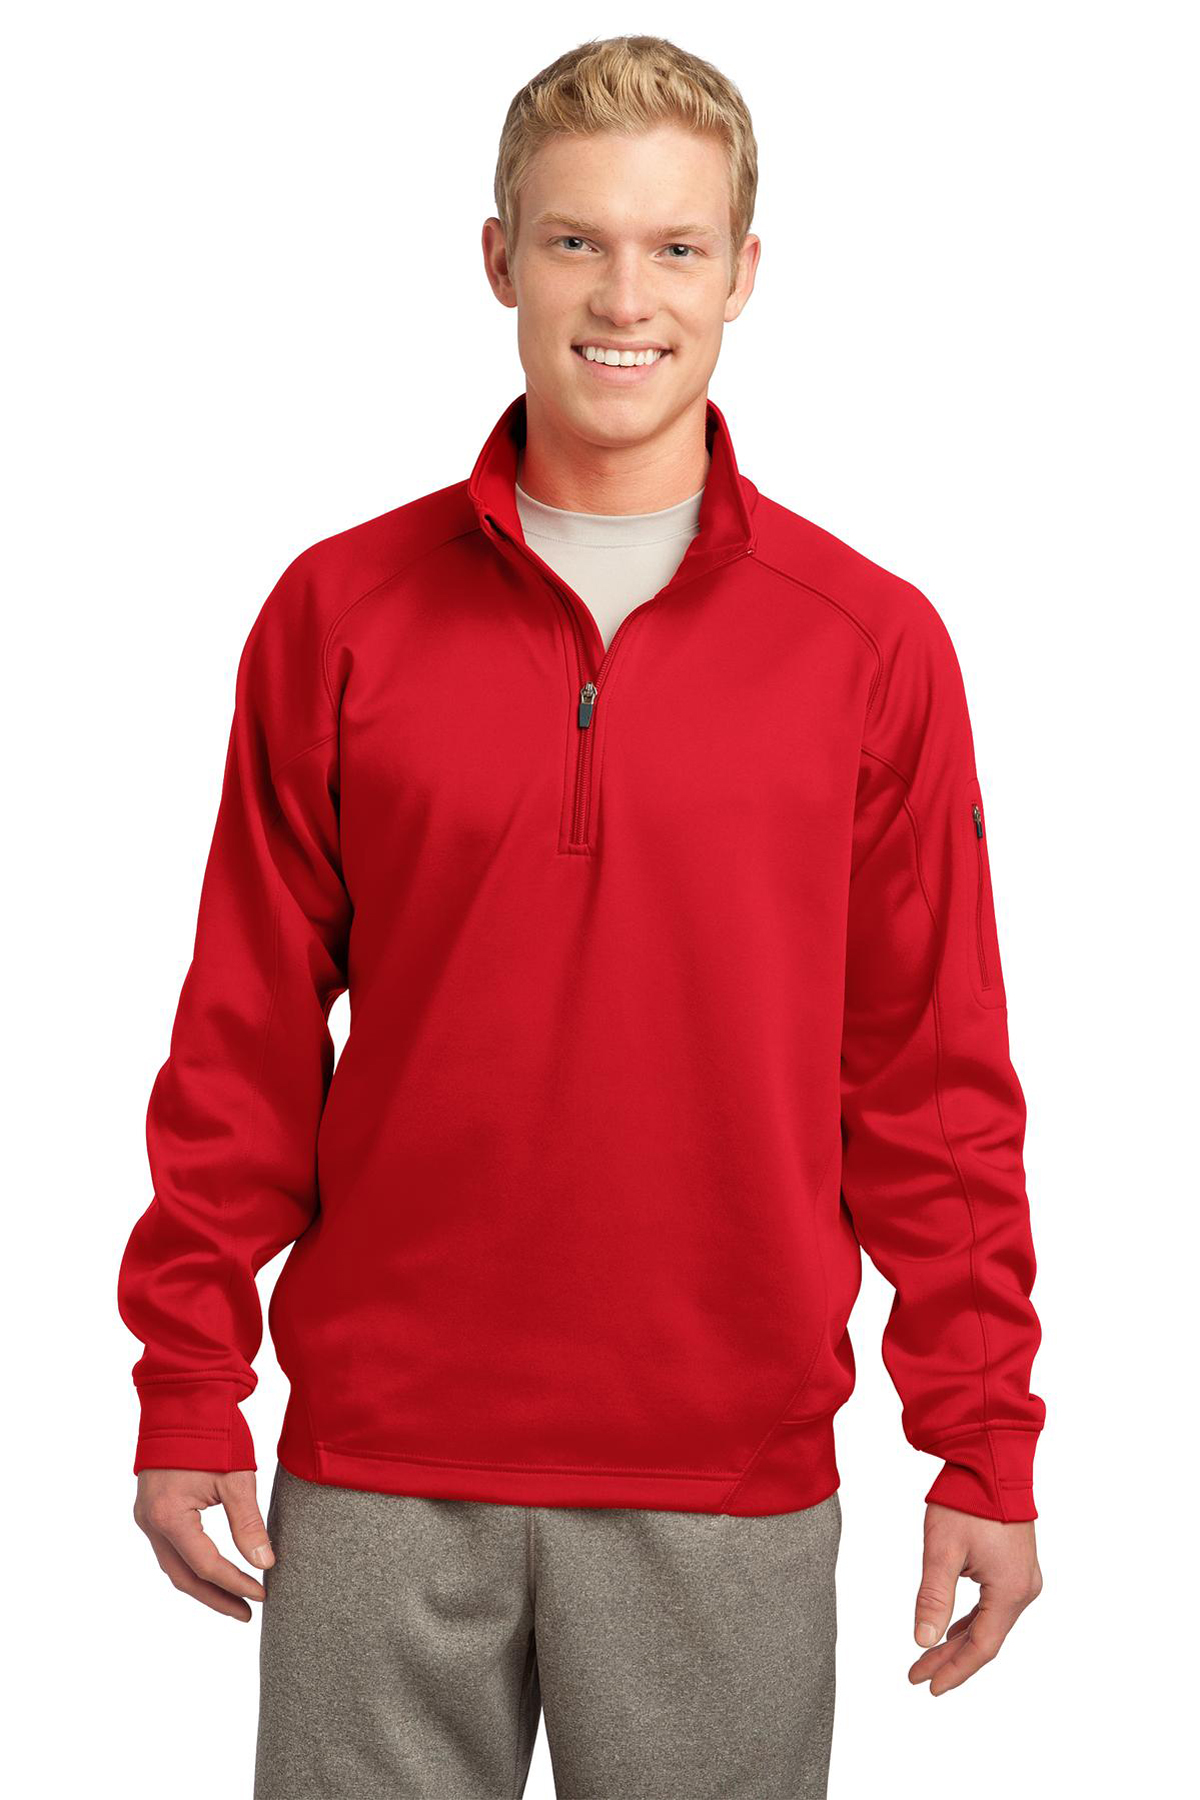 Sweatshirts-Fleece-Performance-2